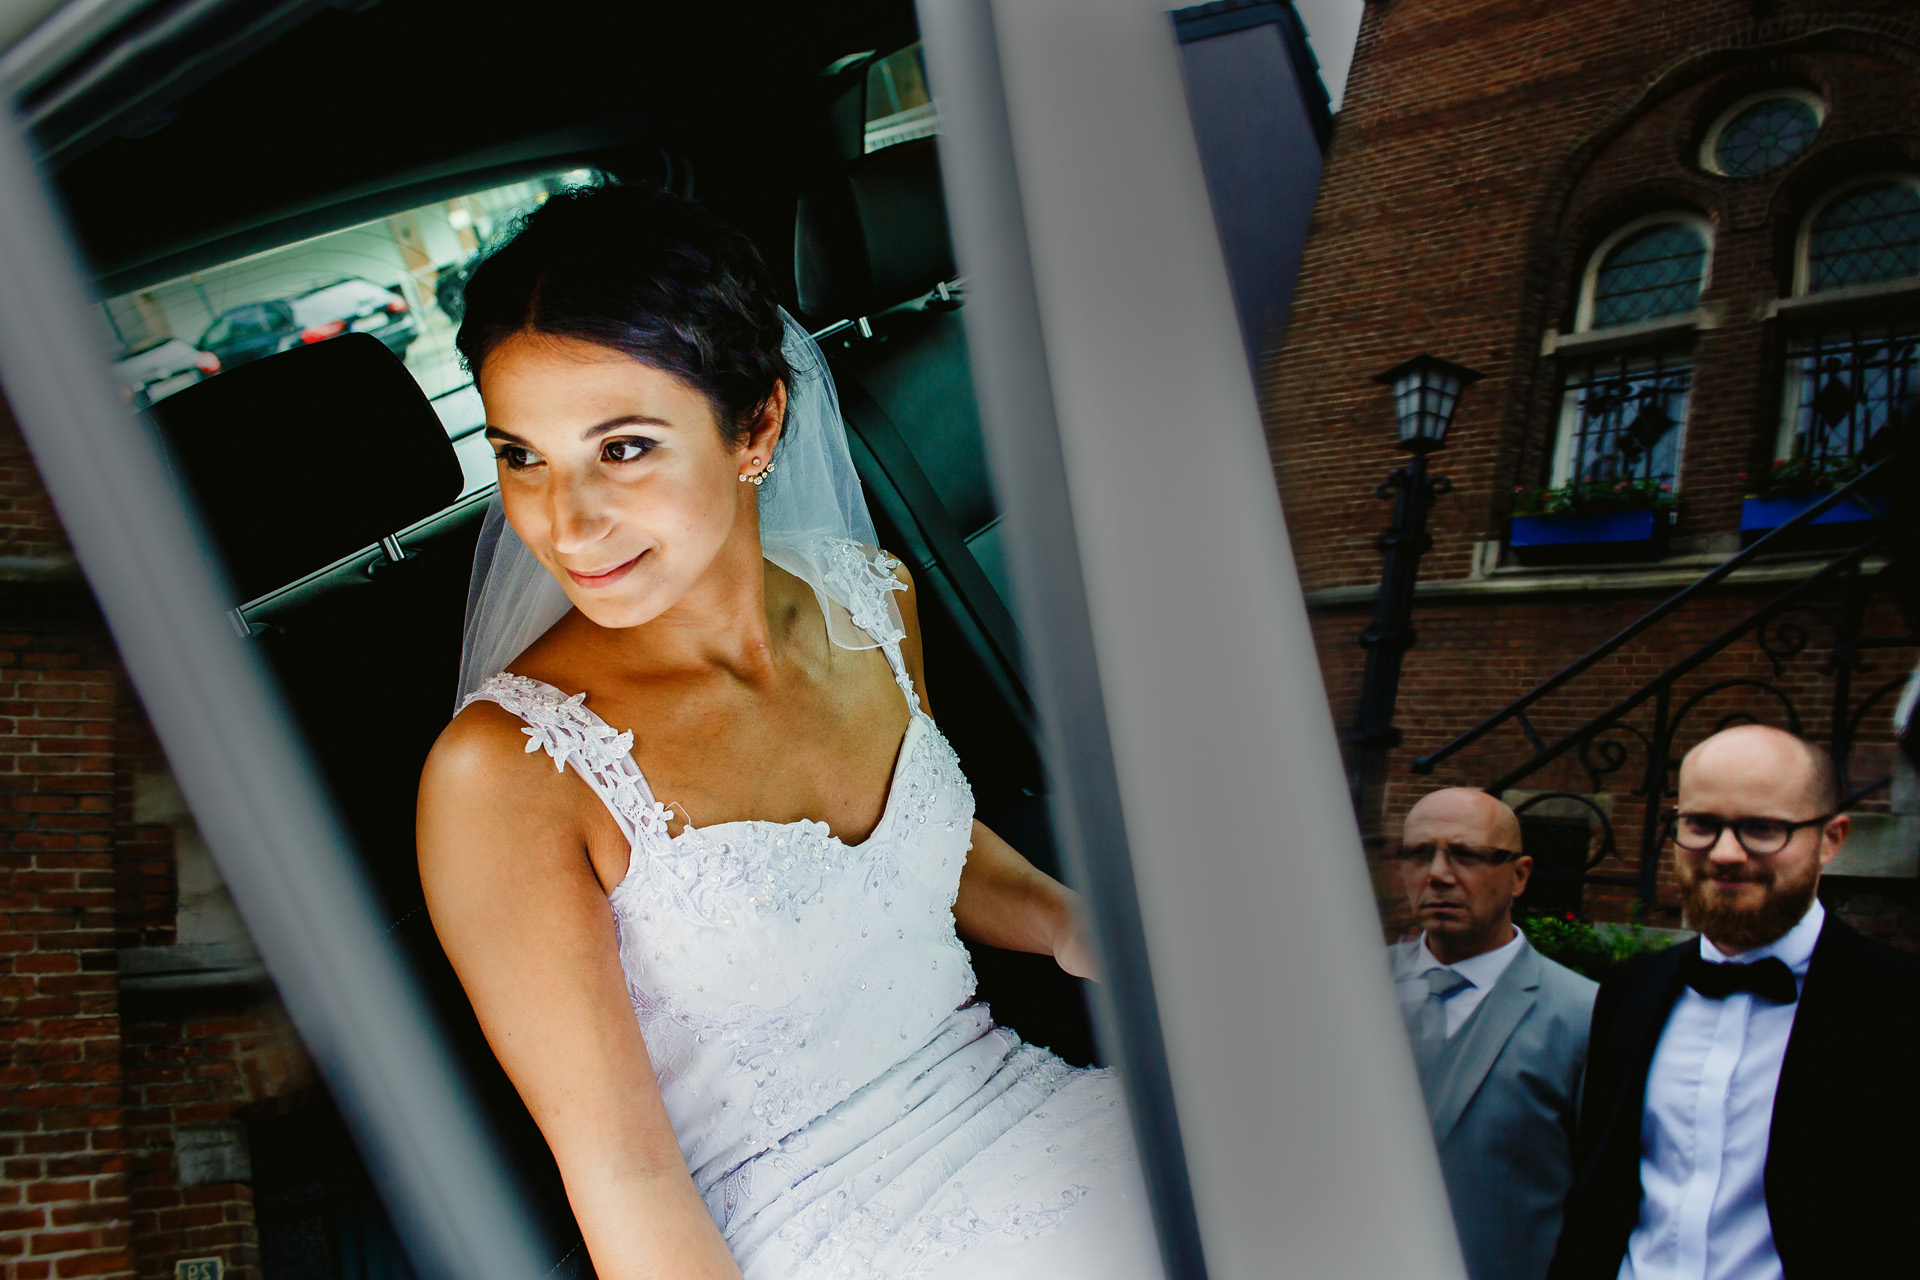 Belgium Elopement Picture of the bride | sitting inside the car now with the door open, looks out after the groom